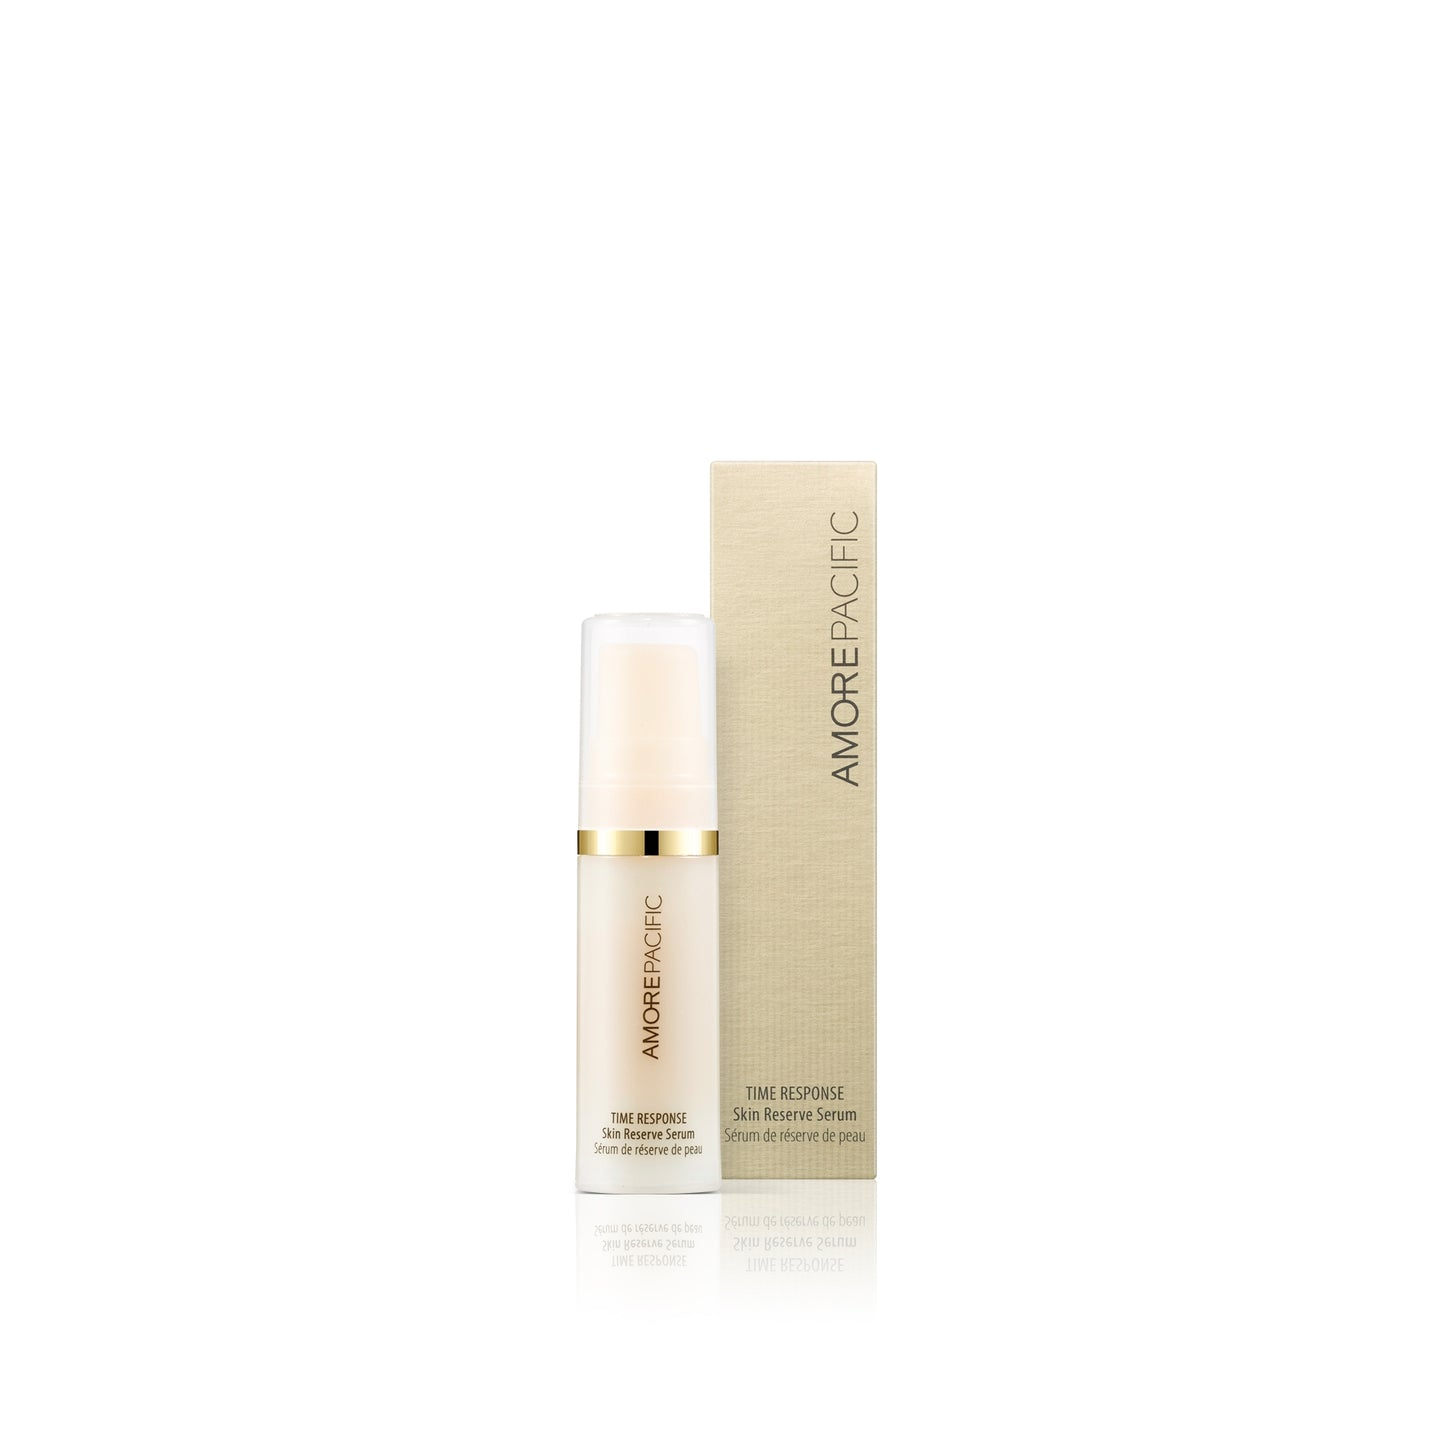 TIME RESPONSE Skin Reserve Serum Deluxe (5ml)